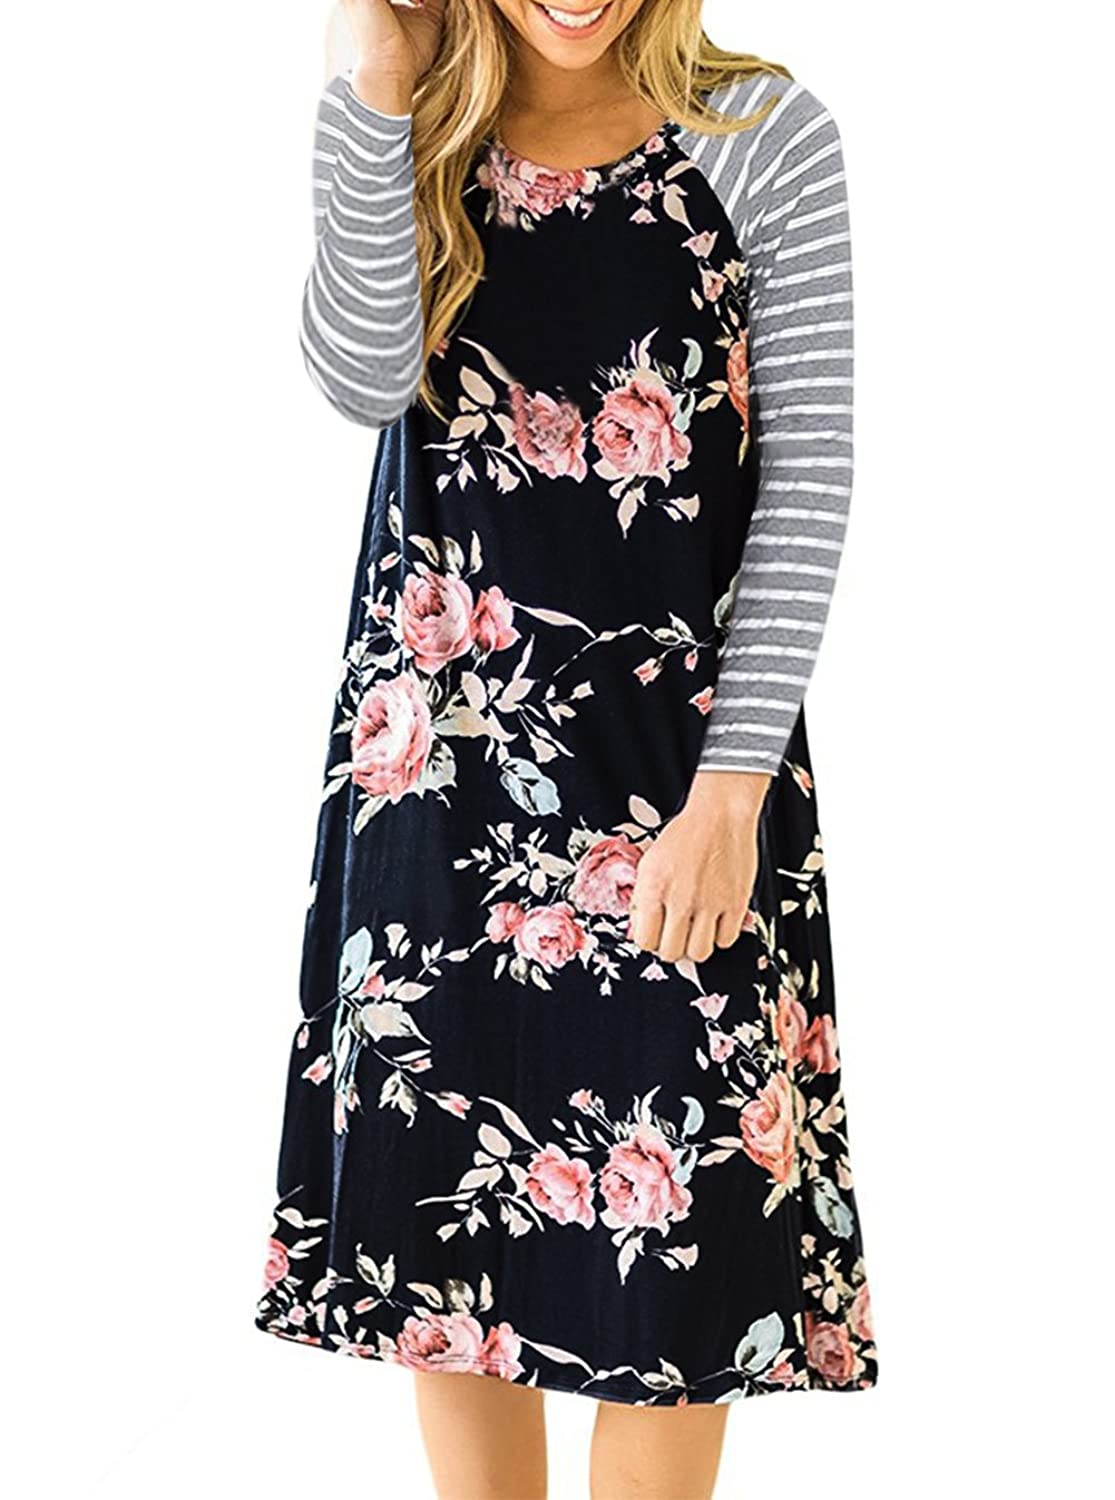 01875dc94c6 Swing dress,Flowy dresses/Occasion:Casual,Vacation,Party. Feature: Floral  Print with Striped Sleeves, Round Neck,A-line Style, Long Sleeves, ...